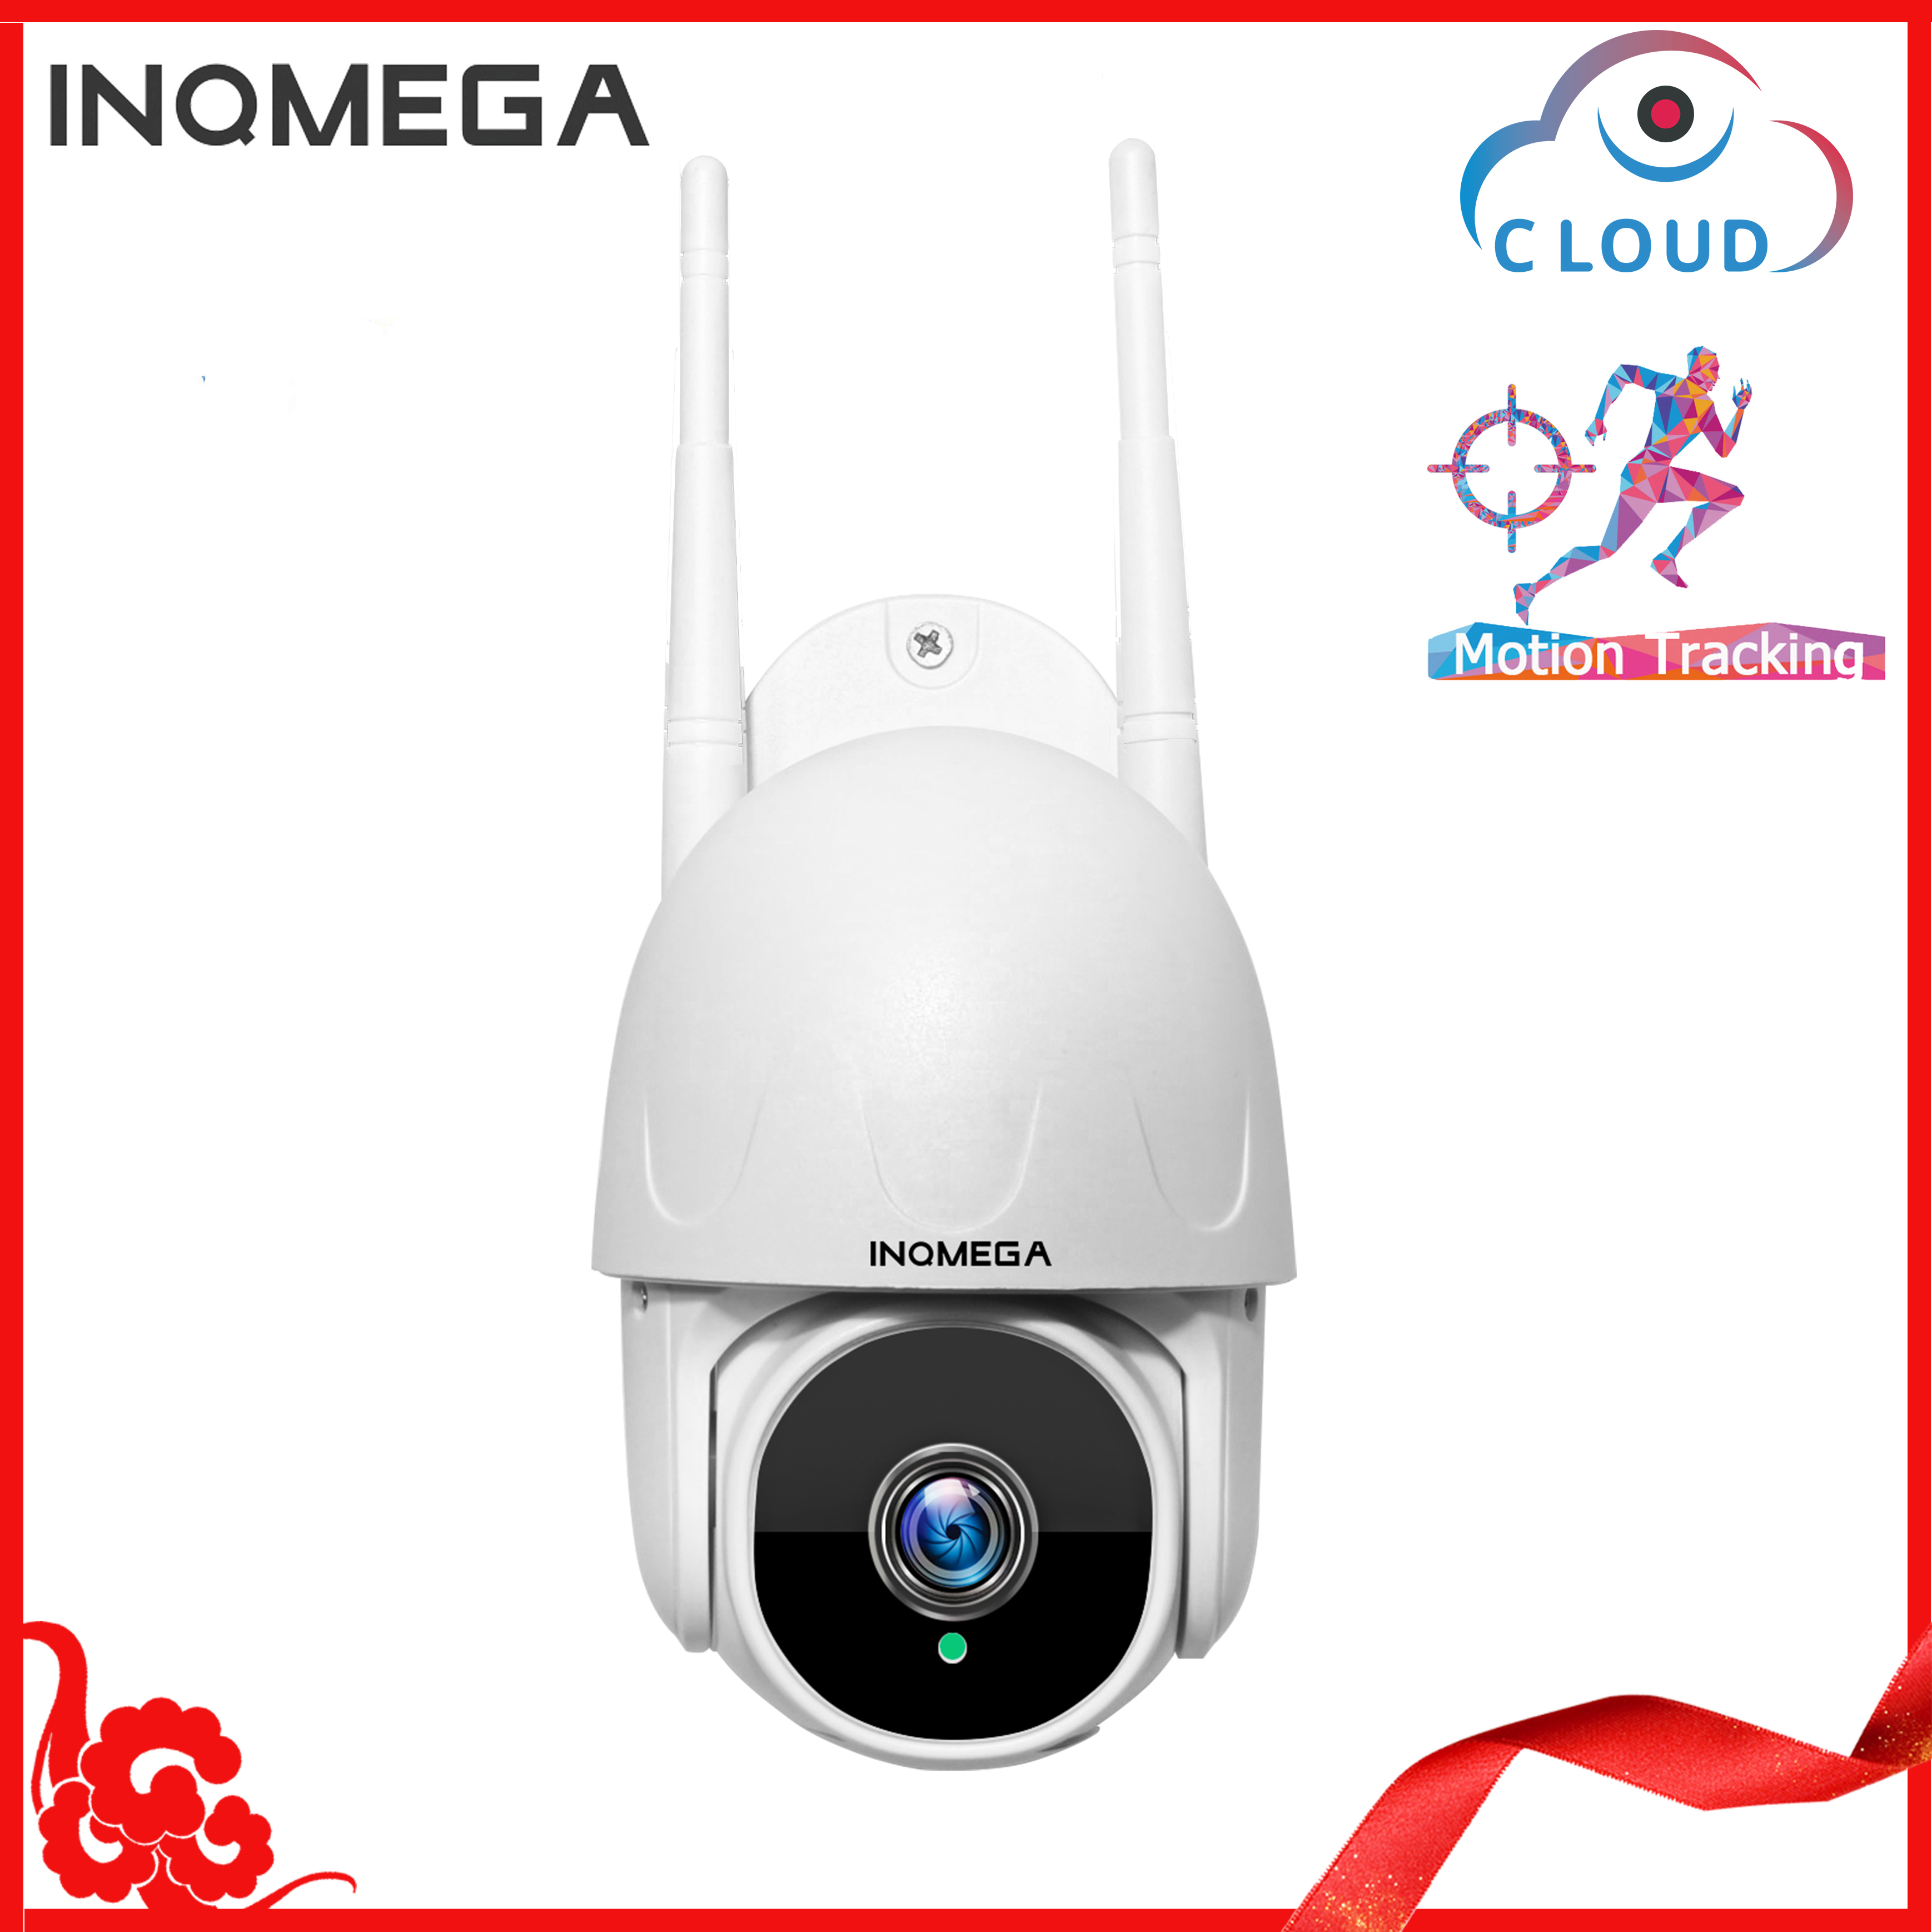 INQMEGA Wolke 1080P PTZ Speed Dome Wifi Kamera Outdoor 2MP Auto-Tracking Kamera ONVIF Drahtlose Kamera Home Überwachung IP Cam